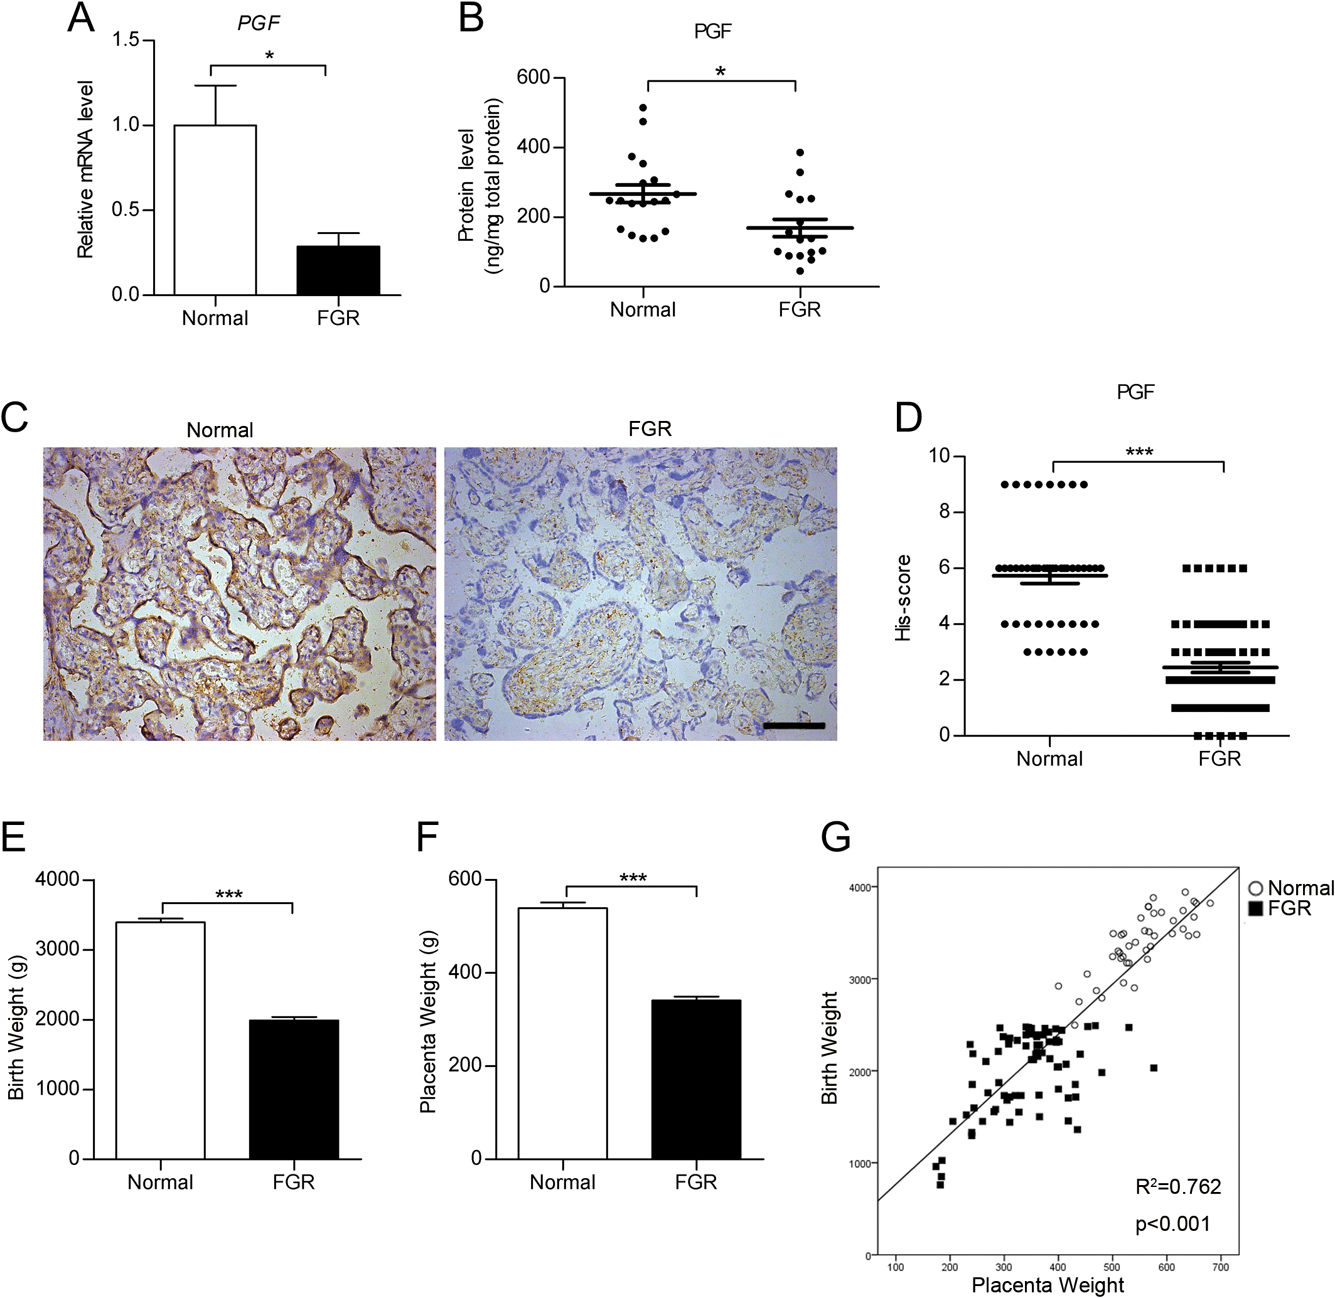 Decreased PGF may contribute to trophoblast dysfunction in